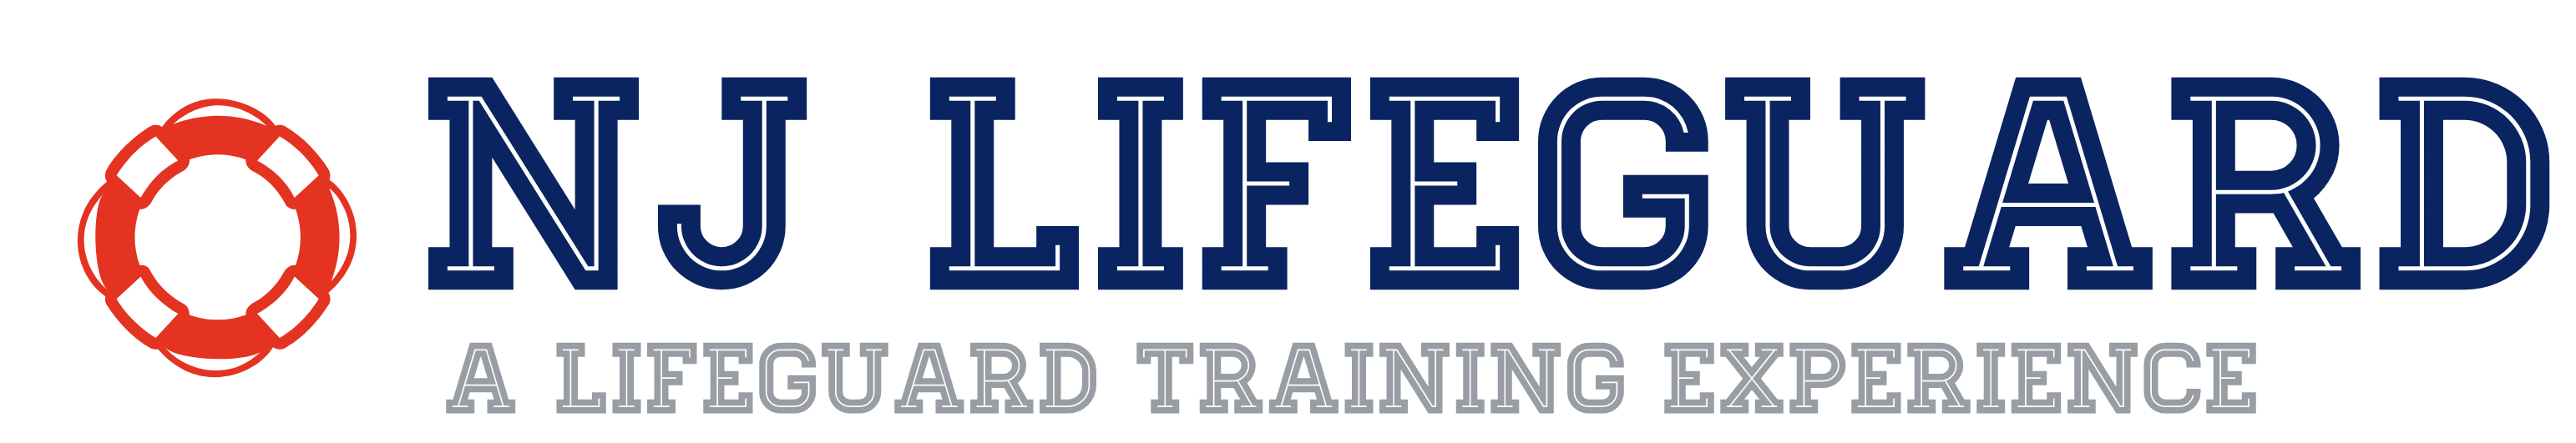 Lifeguard Certification Questions New Jersey Nj Lifeguard